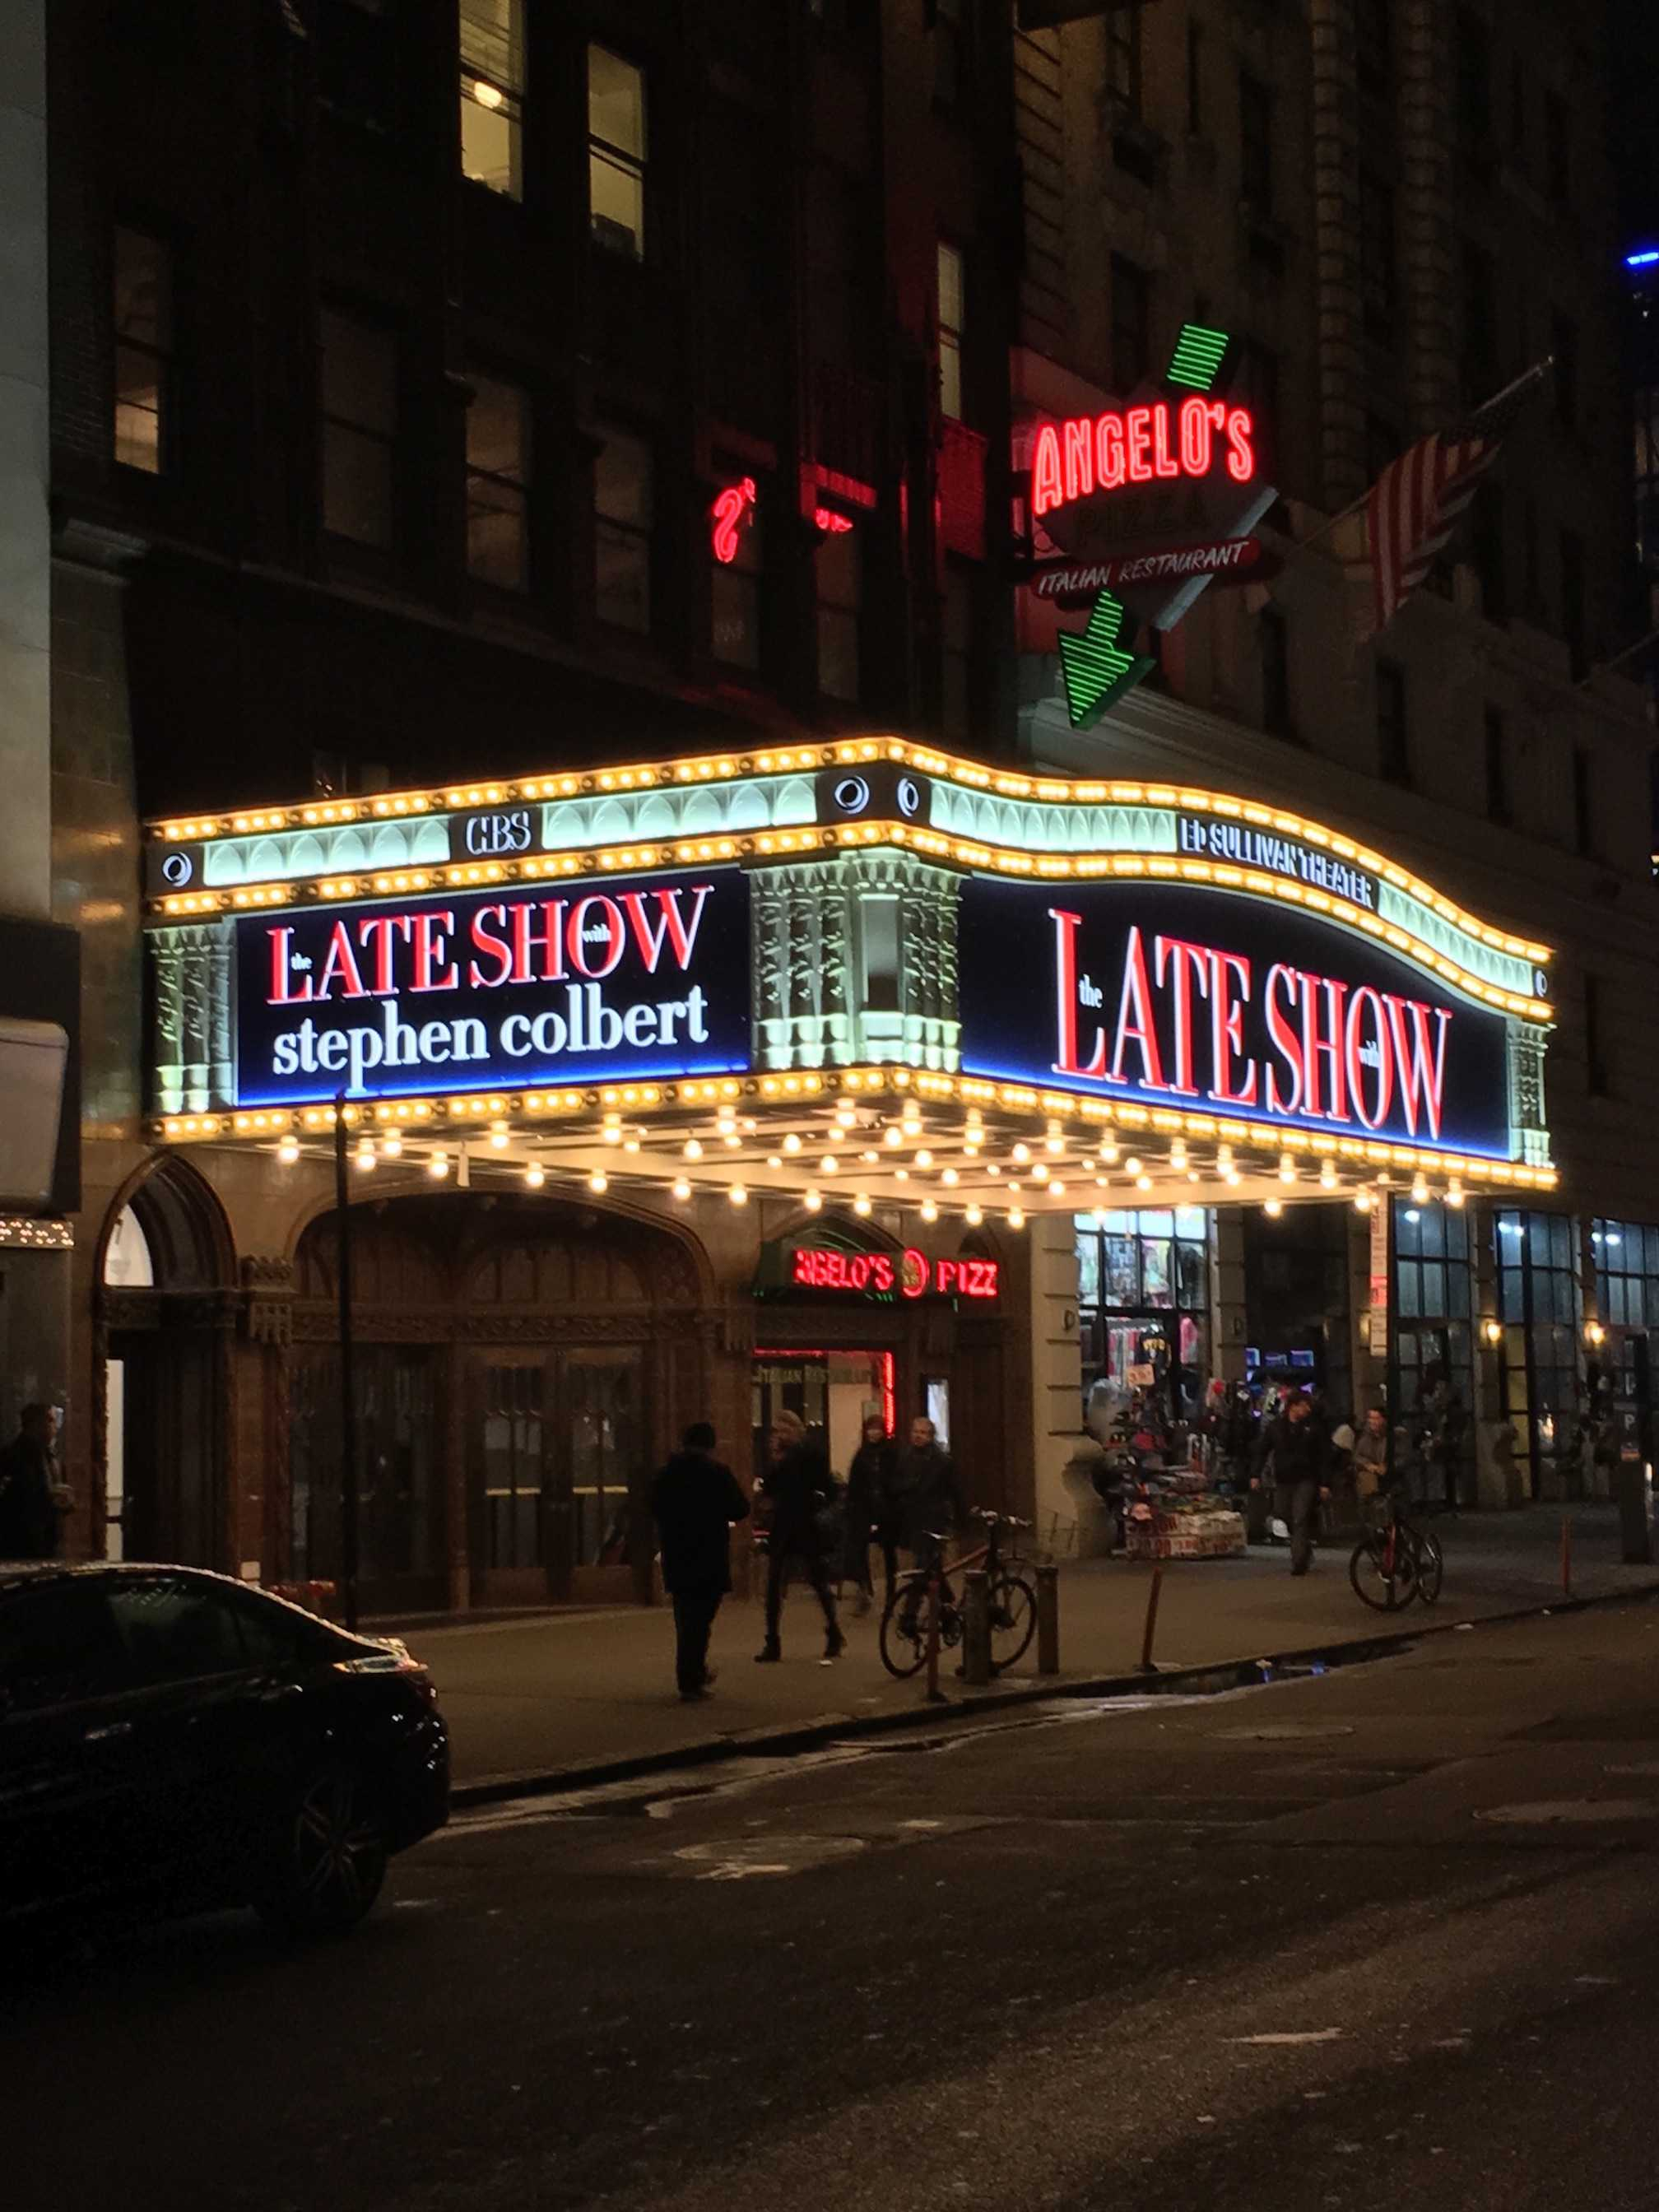 The studio of the Late Show with Stephen Colbert is located at the Ed Sullivan Theater on Broadway.